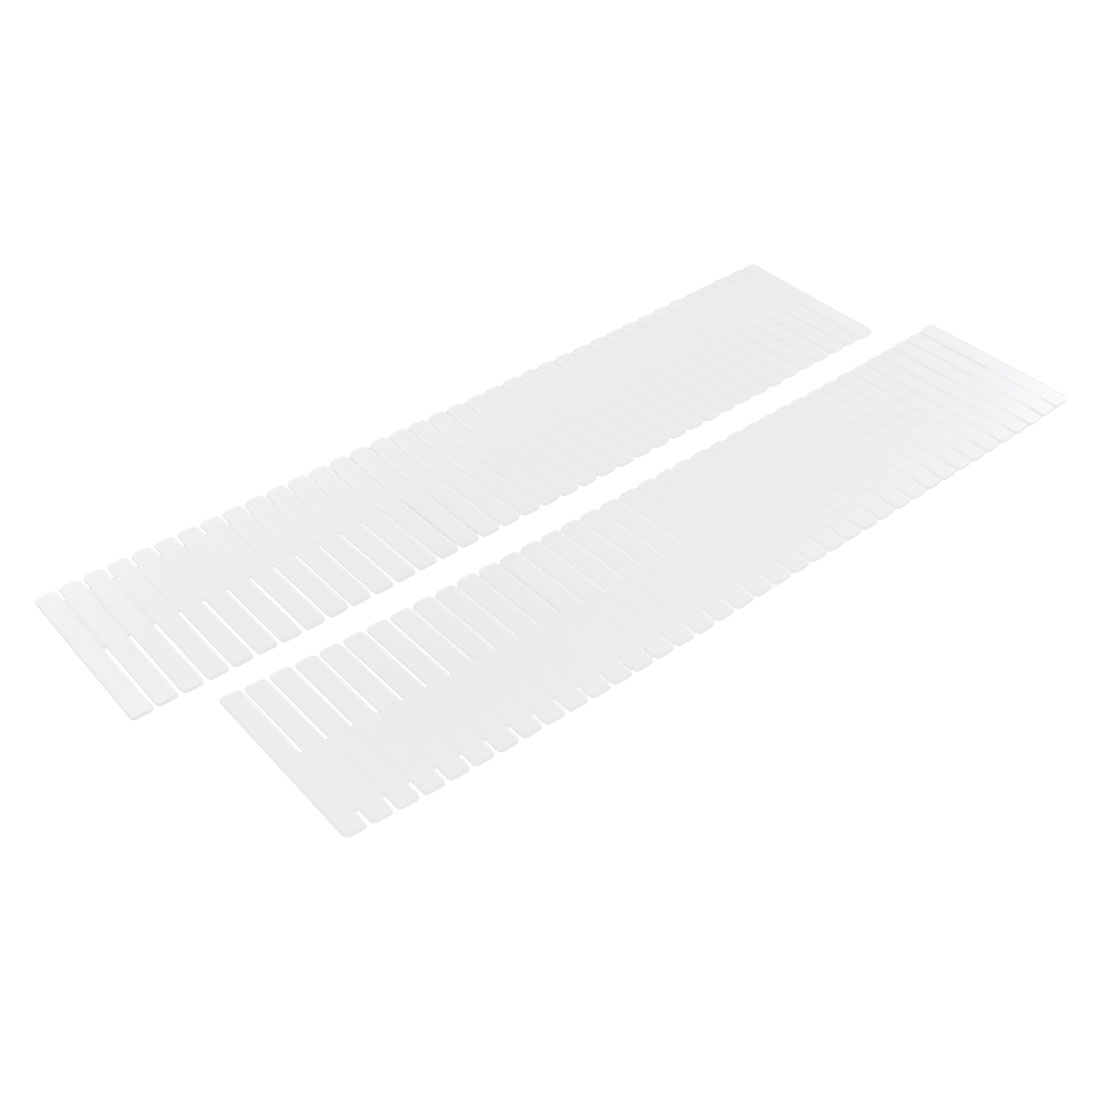 Home Storage Plastic Drawer Closet Grid Divider Tidy Organizer Container White 2pcs